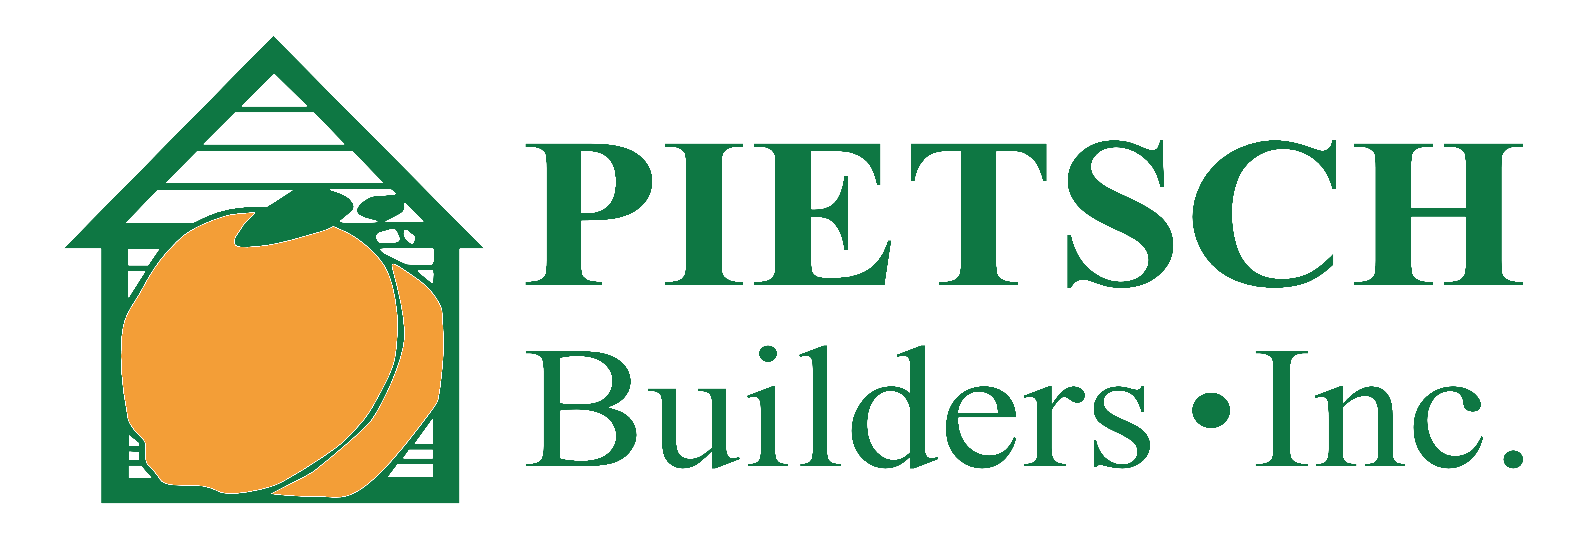 Pietsch Builders, Inc.